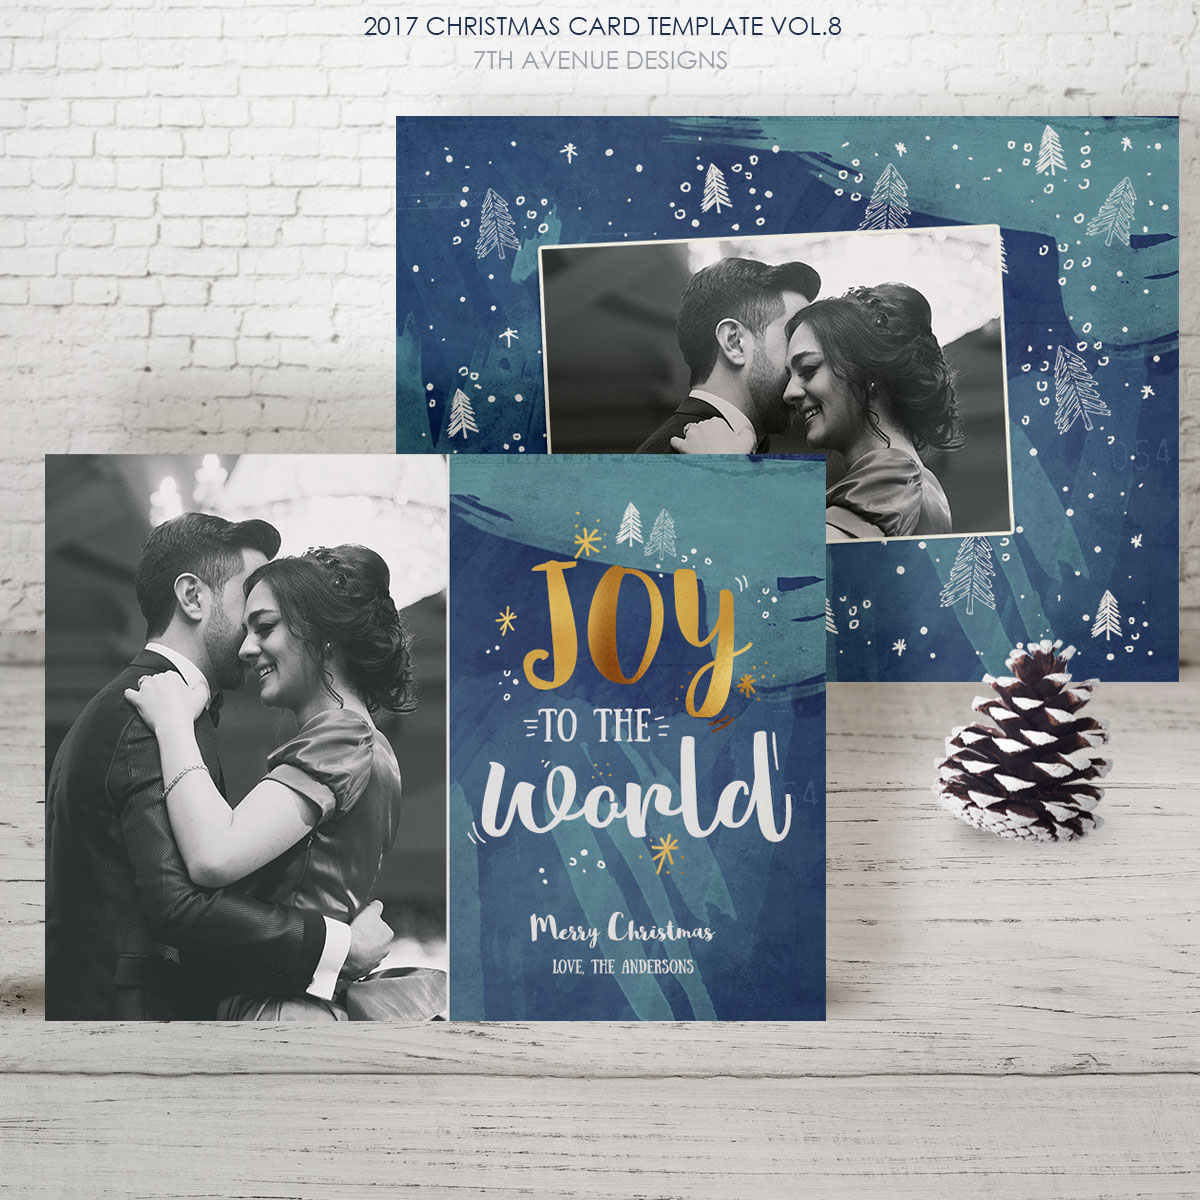 2017 Christmas Card Templates vol.8